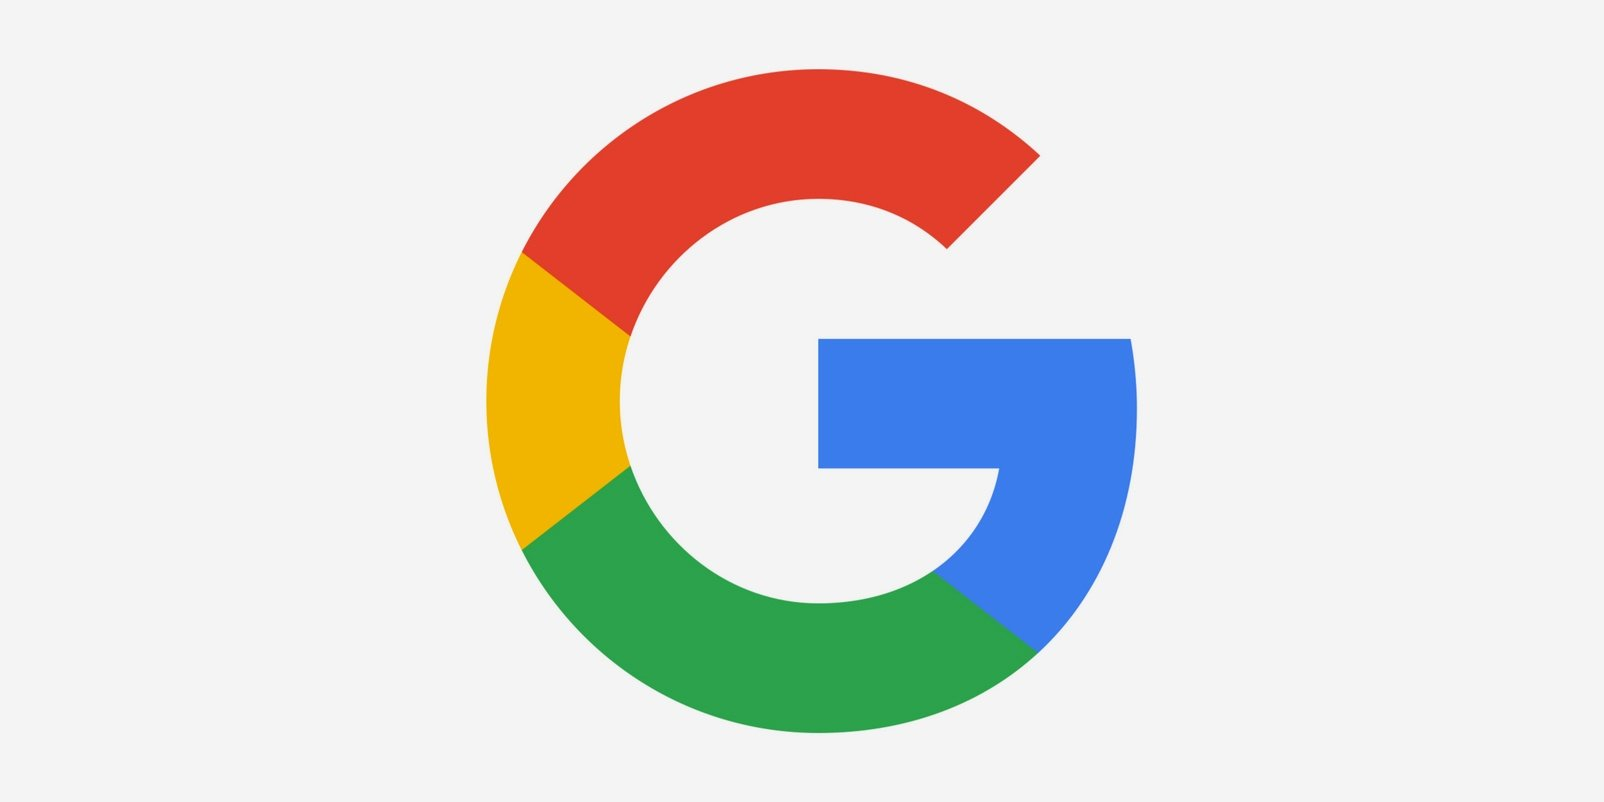 Why Google moves to delete Gmails without users permission in latest terms, conditions